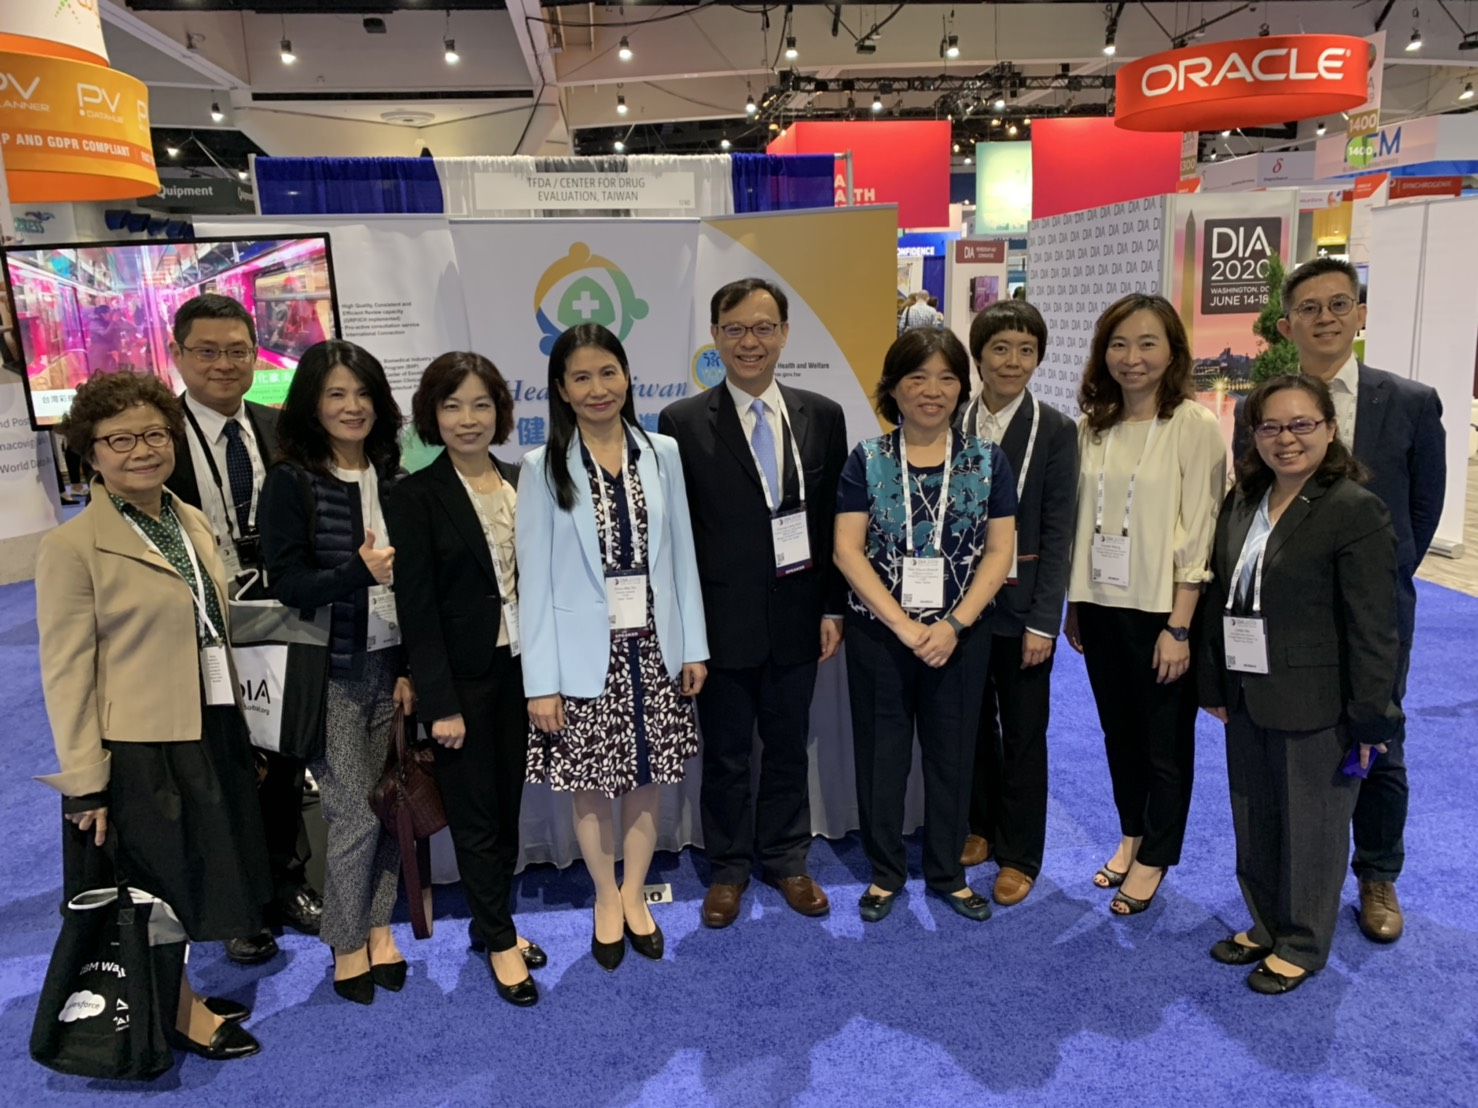 Exhibit booth Health Taiwan in 2019 DIA Annual Meeting